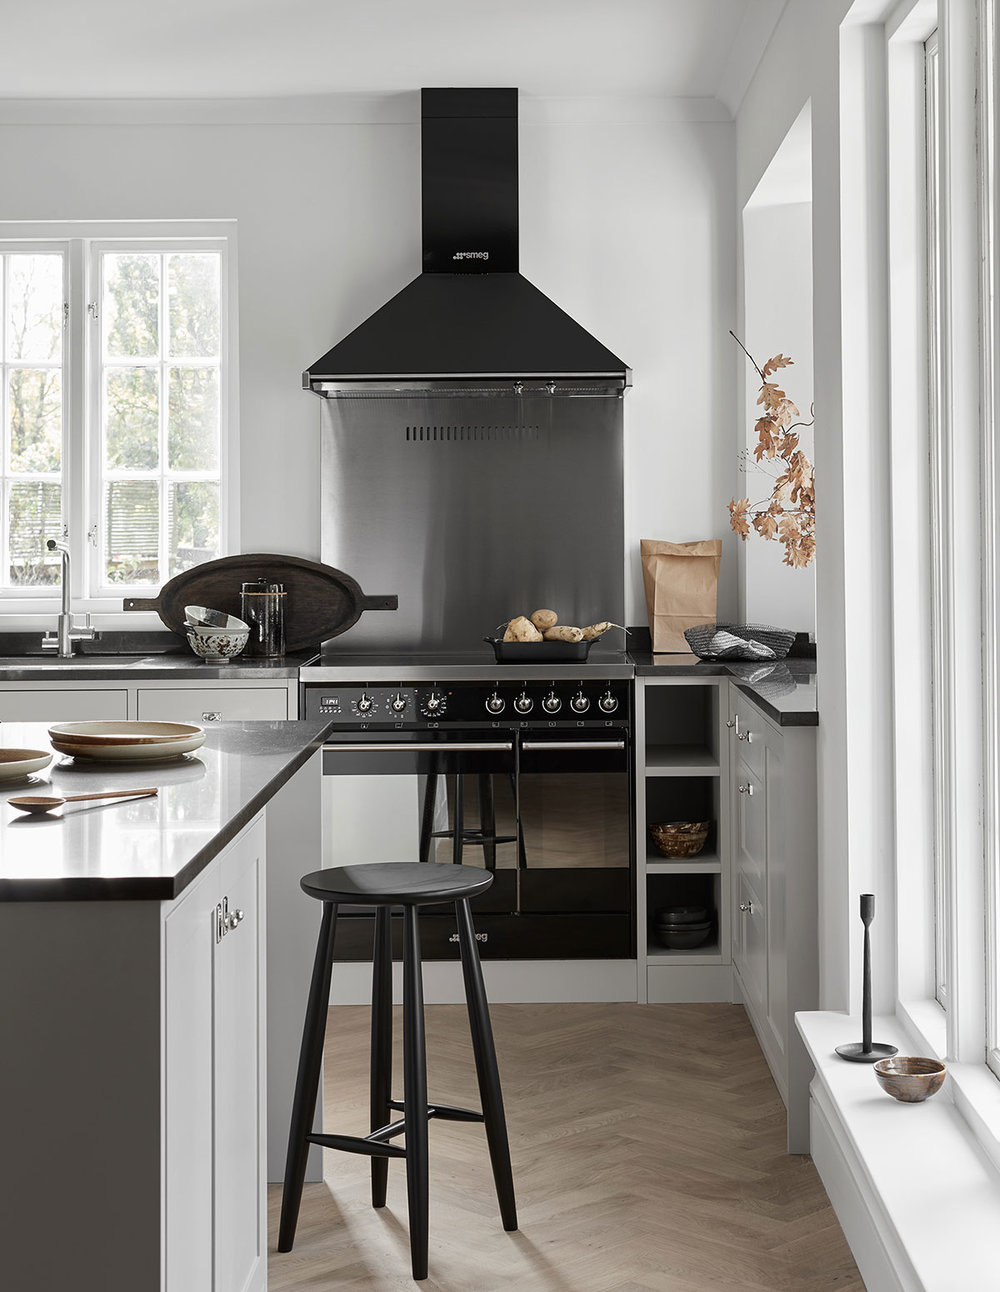 Classic Scandinavian shaker kitchen design in grey black stove and fan